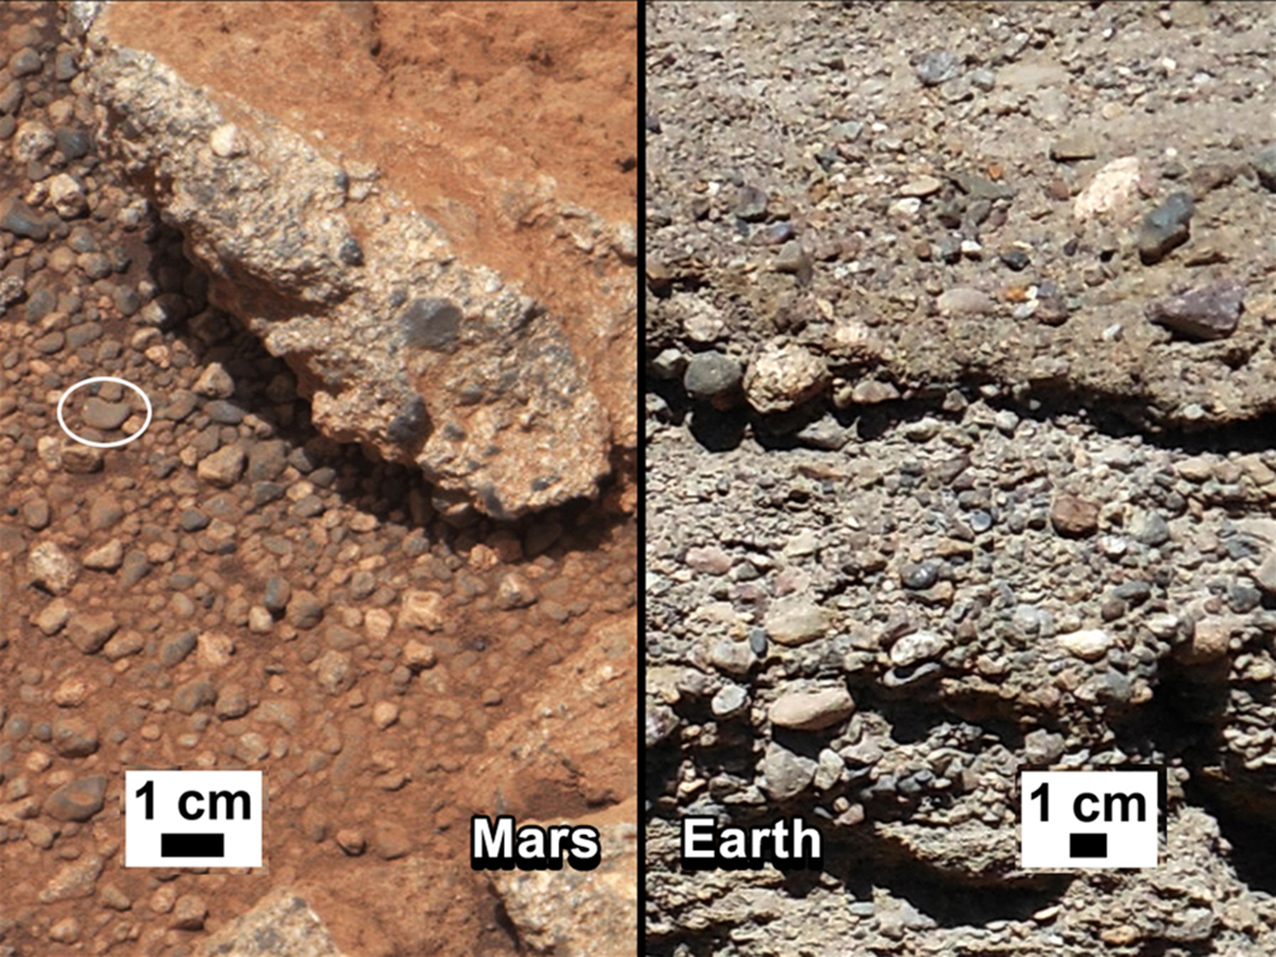 Rock Outcrops on Mars and Earth